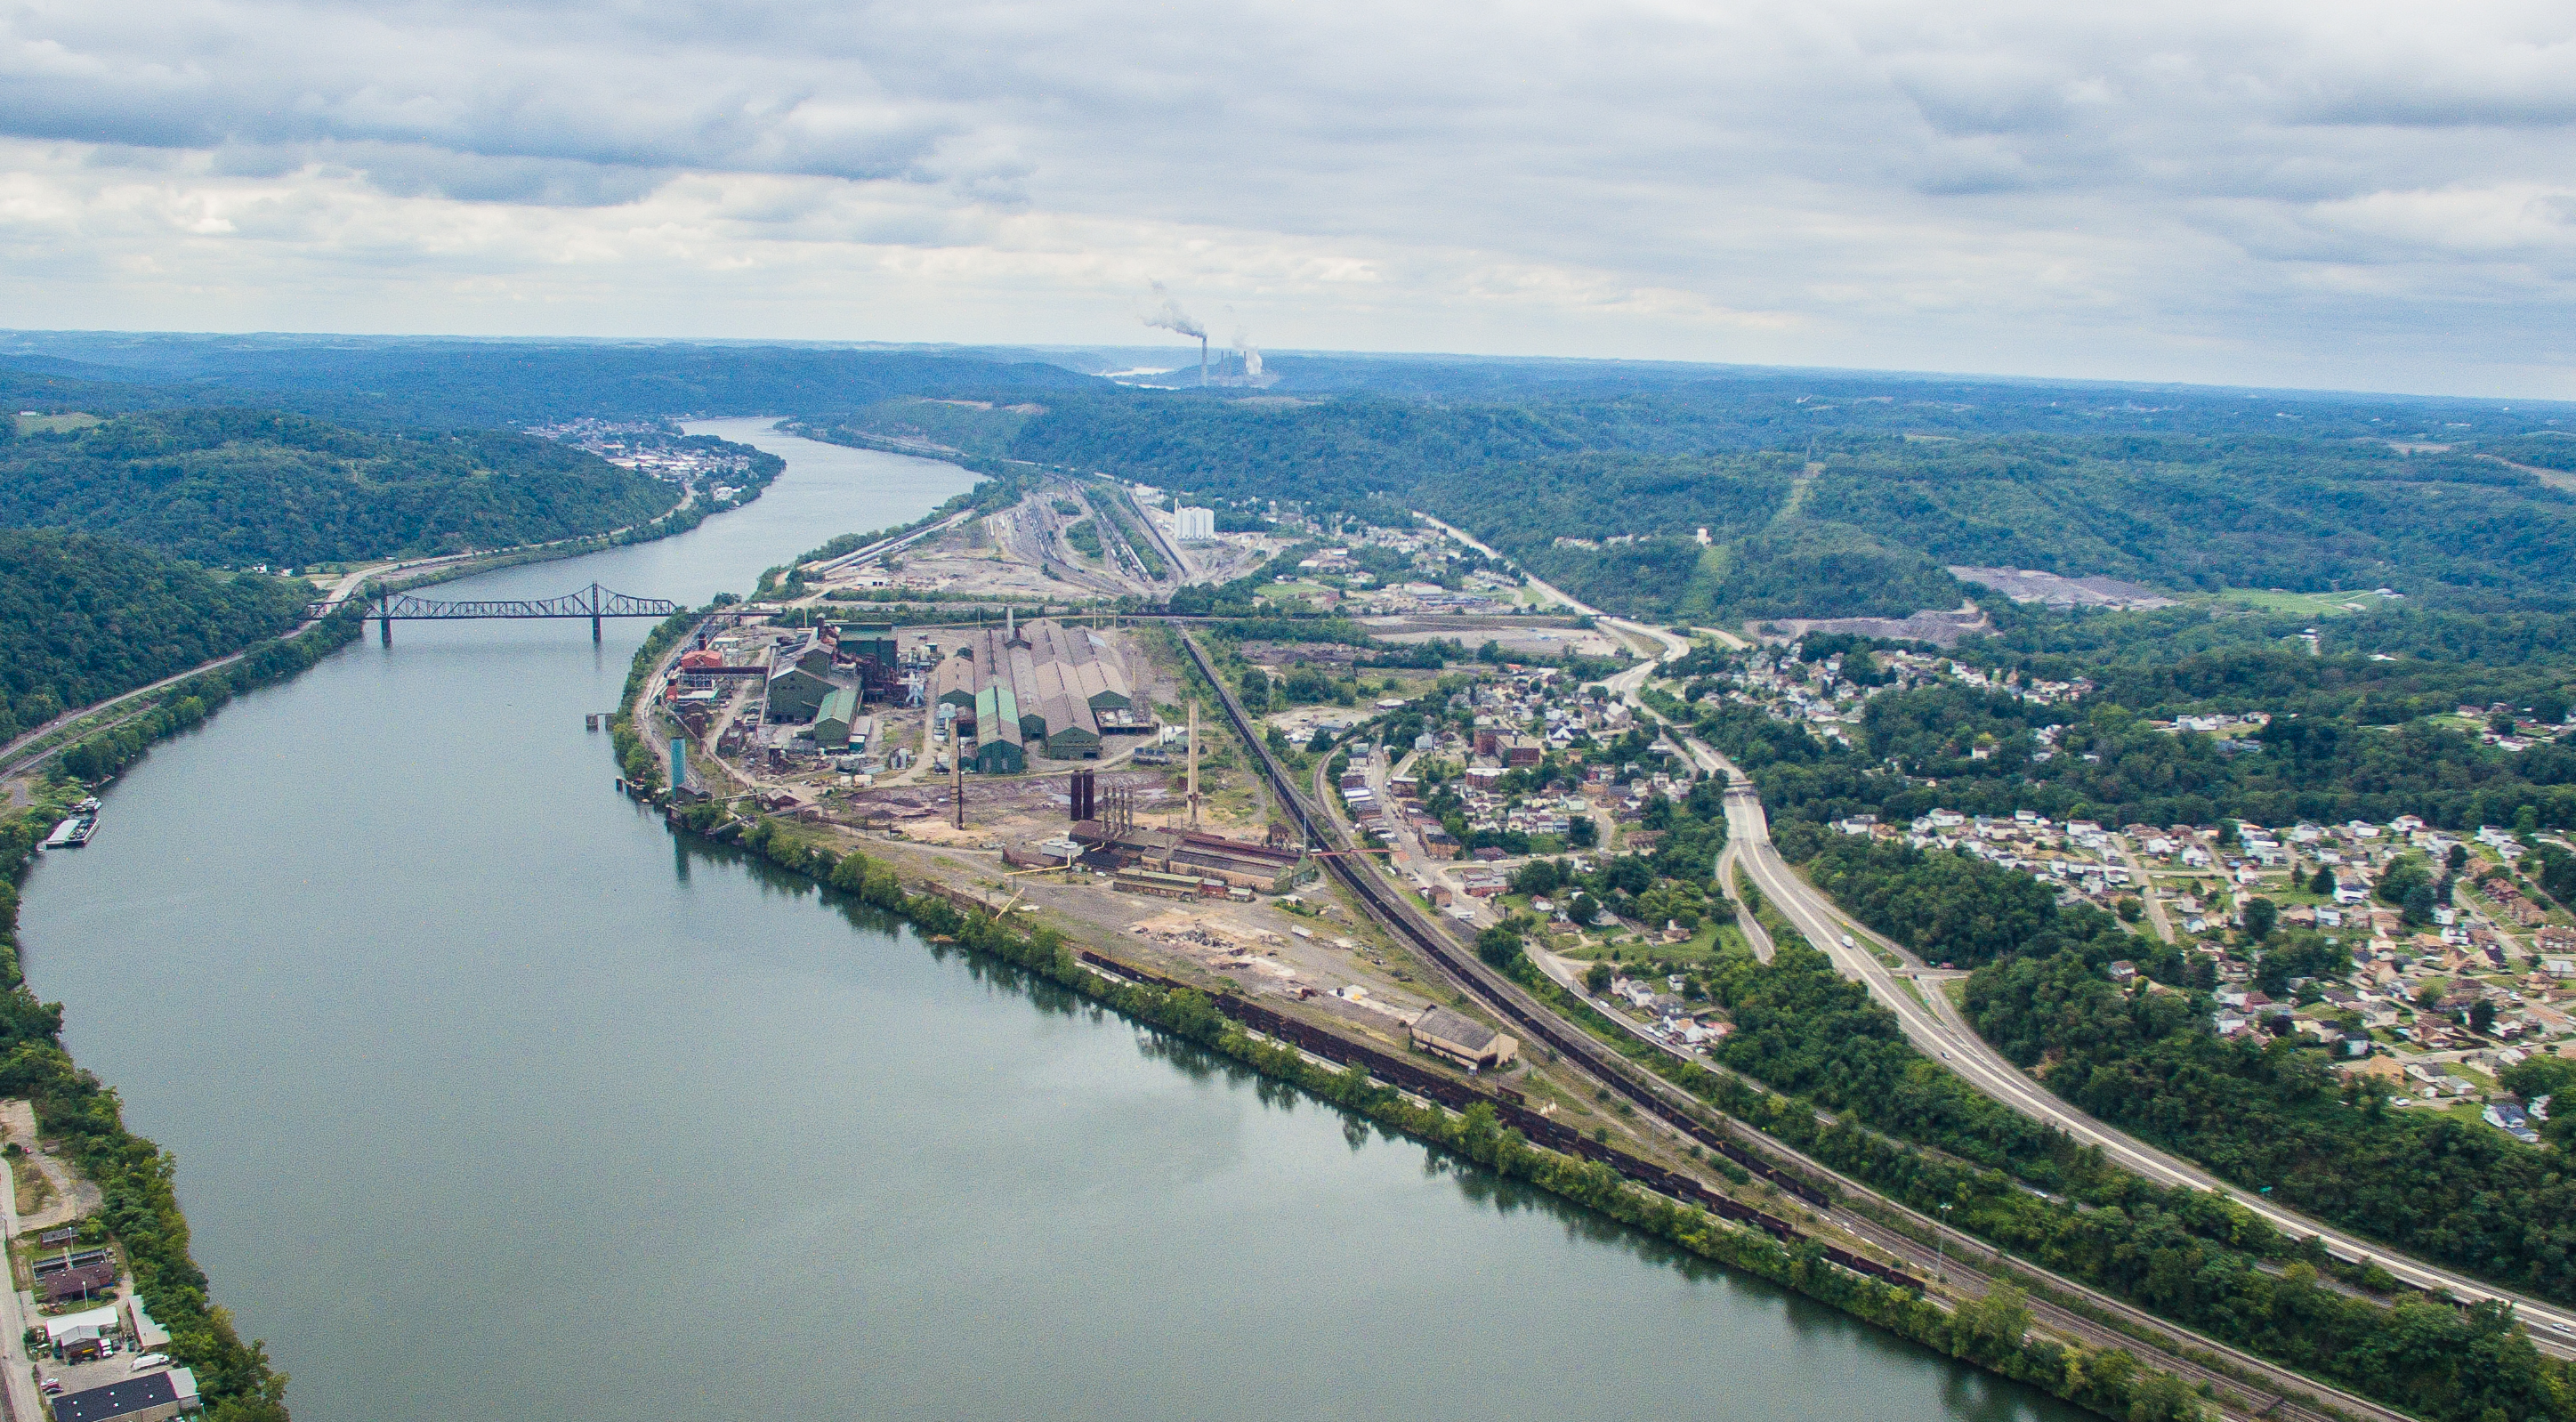 Aerial image of Ohio Valley Industrial Park – North Site